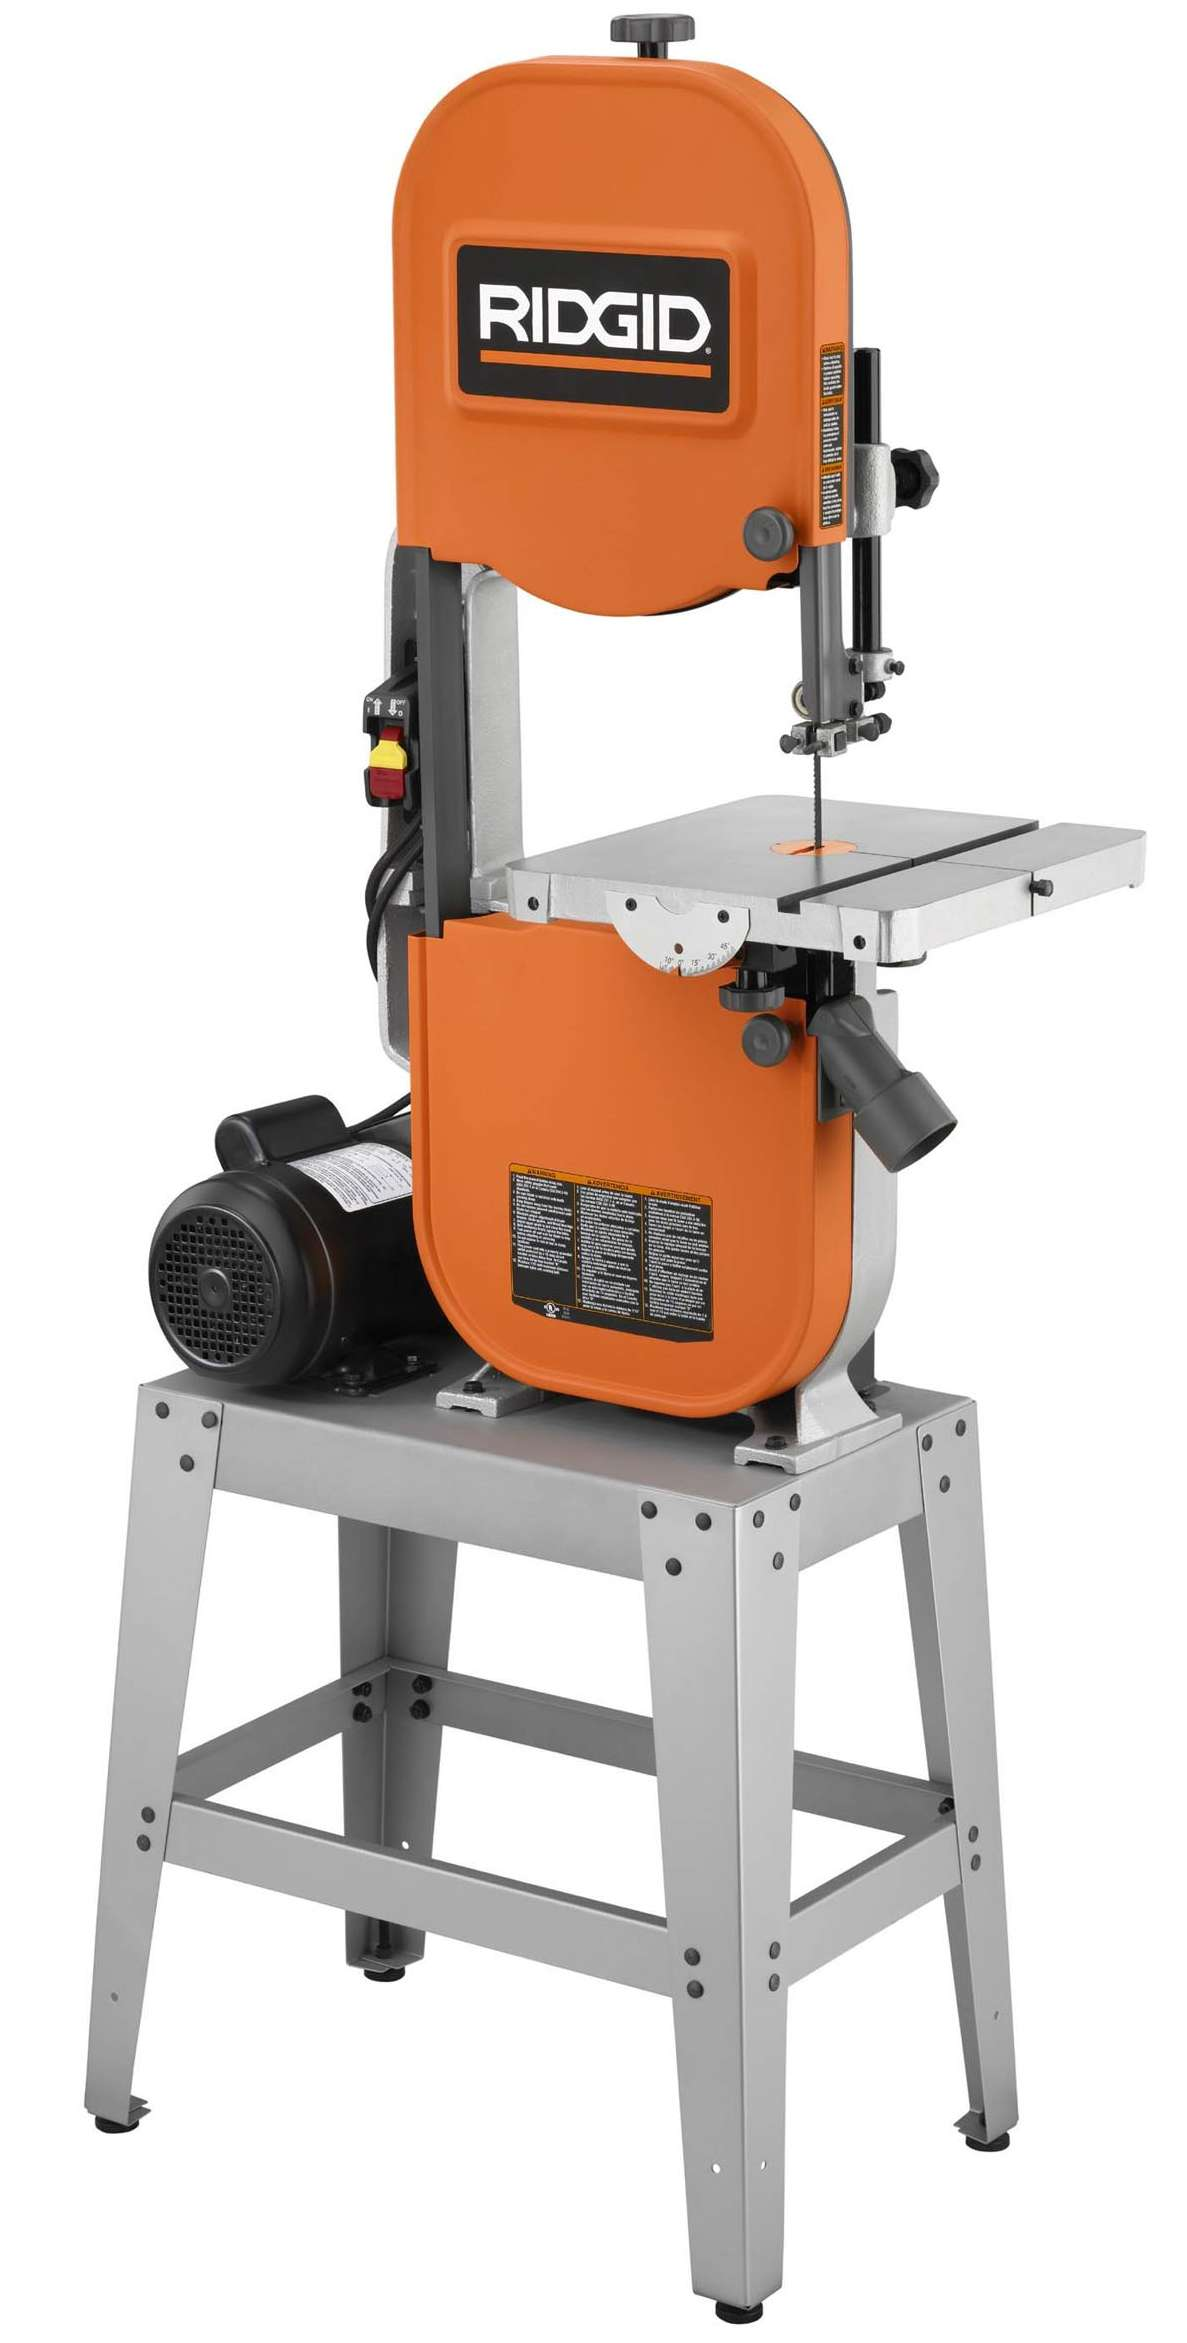 Ridgid 14 Band Saw Has Ability To Cut Stock Up To Six Inches Thick